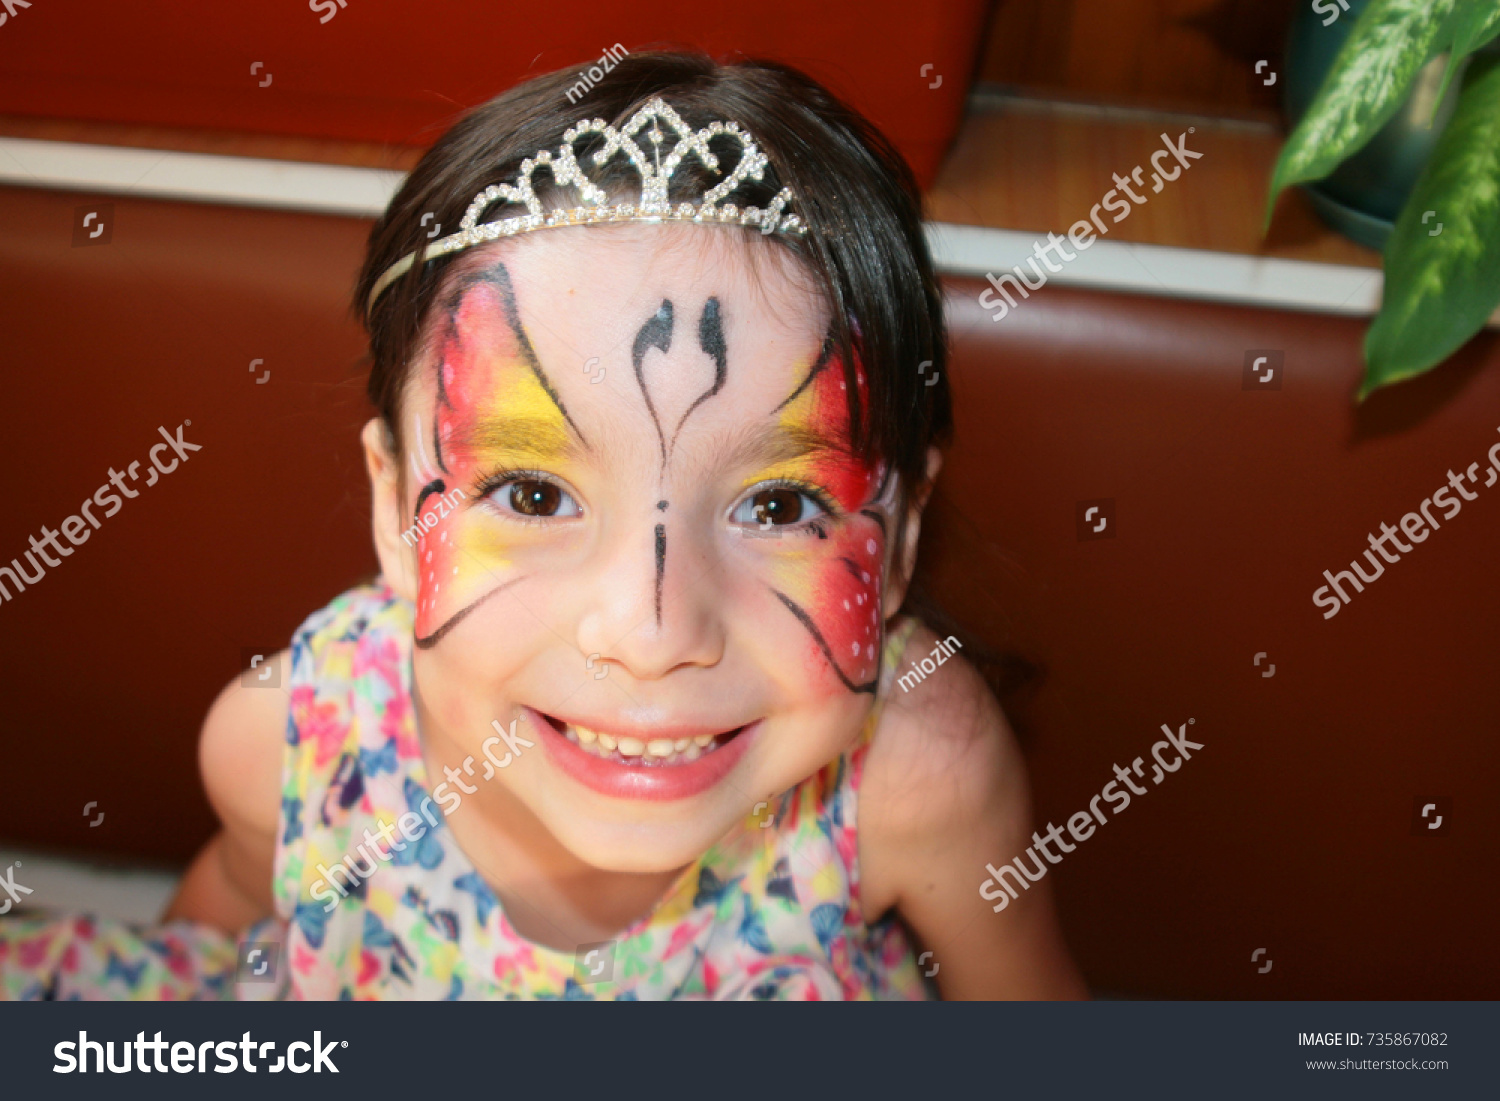 Girl Tattoo On Her Face Stock Photo Edit Now 735867082 Shutterstock